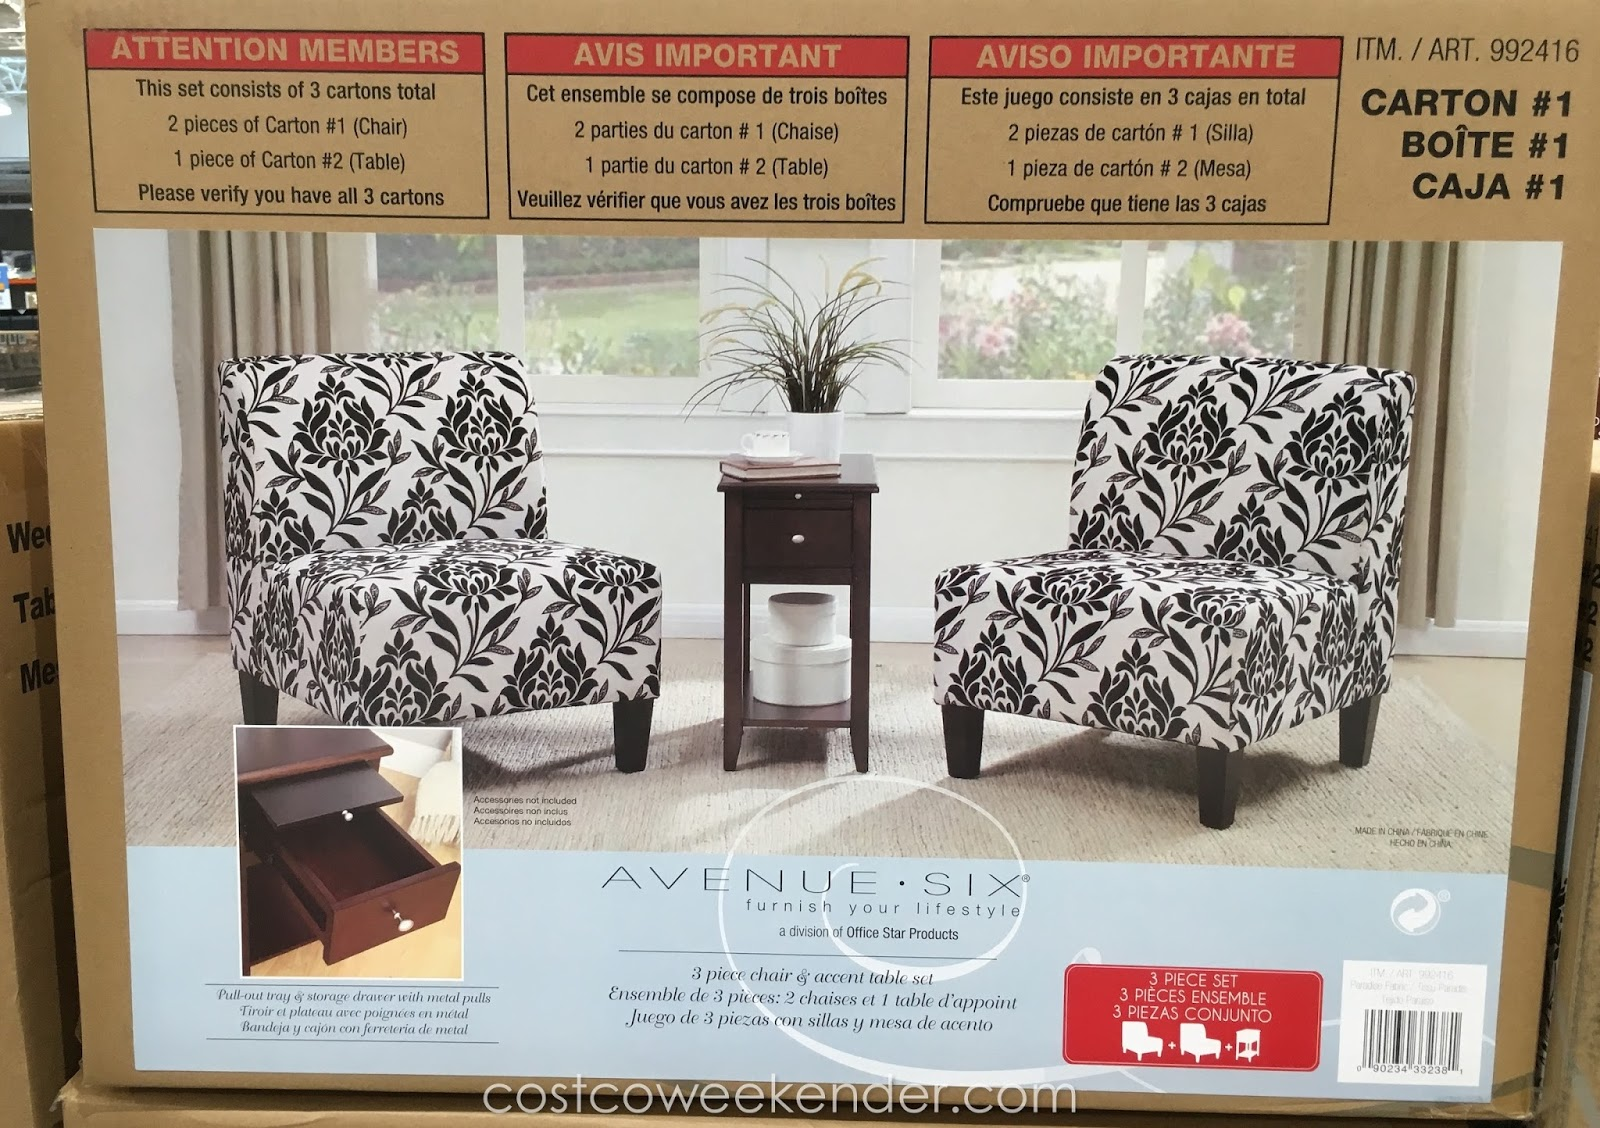 ave six chair bulk chairs for sale avenue 3 piece and accent table set costco weekender of two pieces to complete that corner